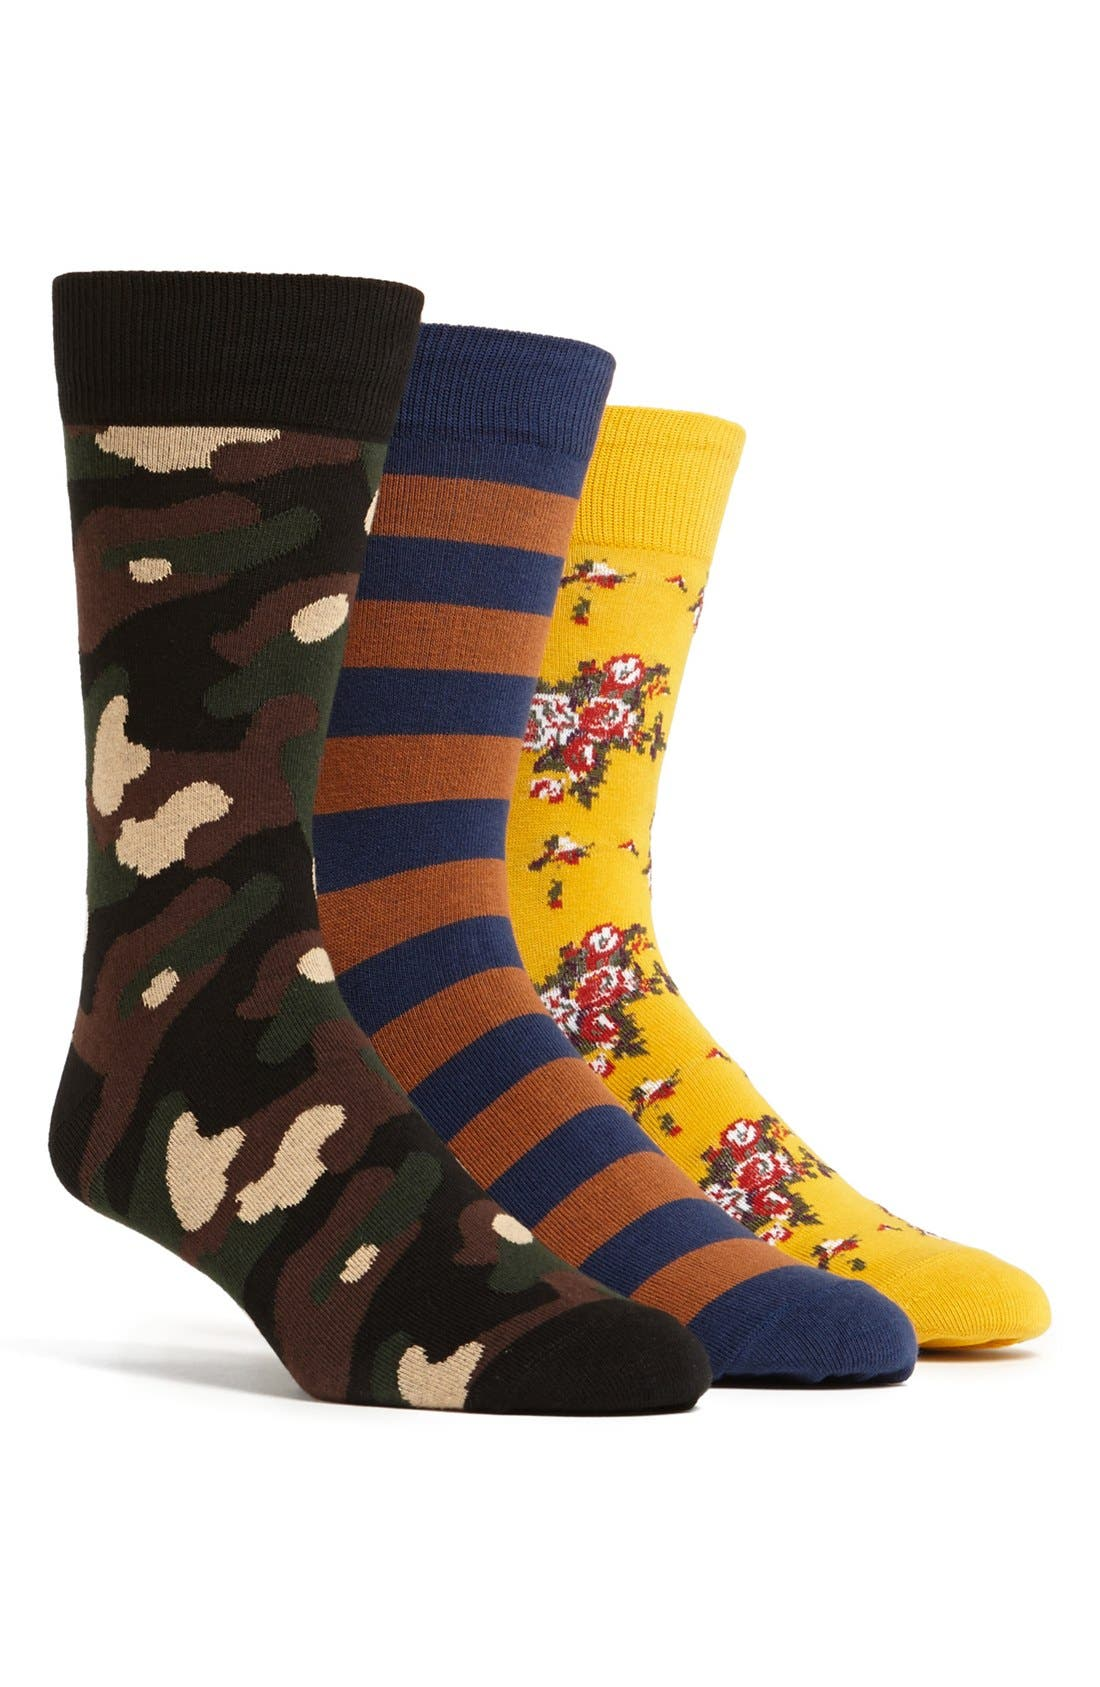 Alternate Image 1 Selected - Richer Poorer 'The Long Weekend' Socks Gift Set (3-Pack)